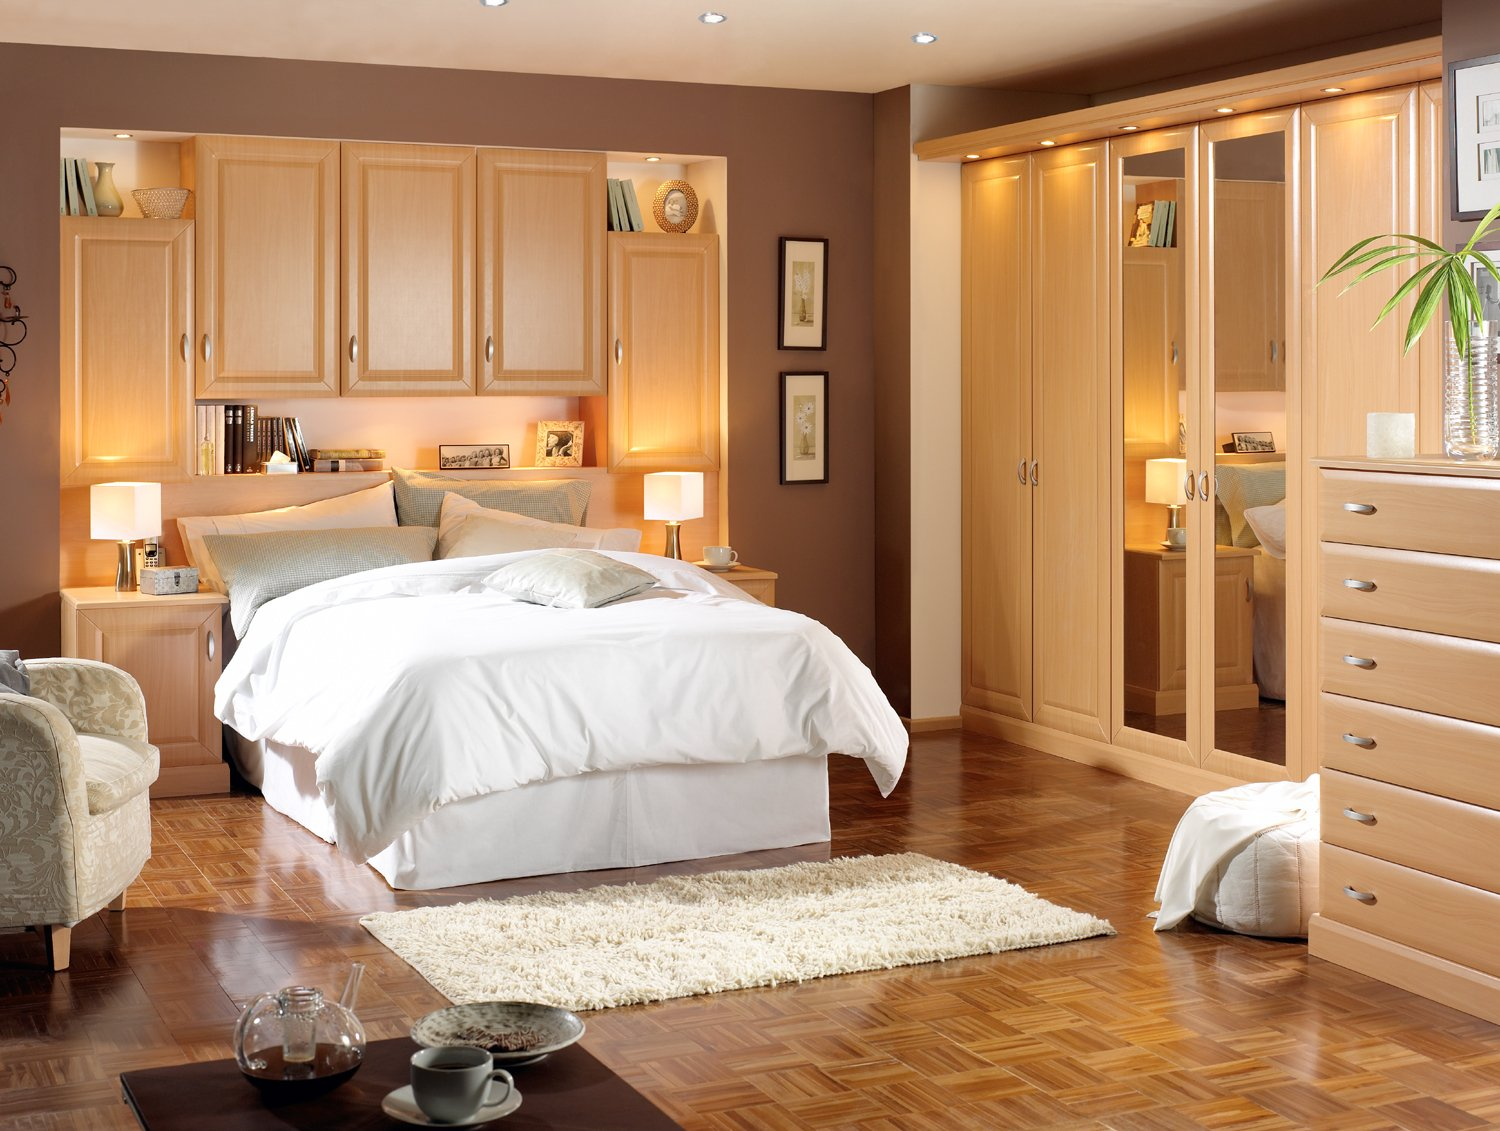 Bedrooms cupboard designs pictures an interior design for Bedroom designs nz